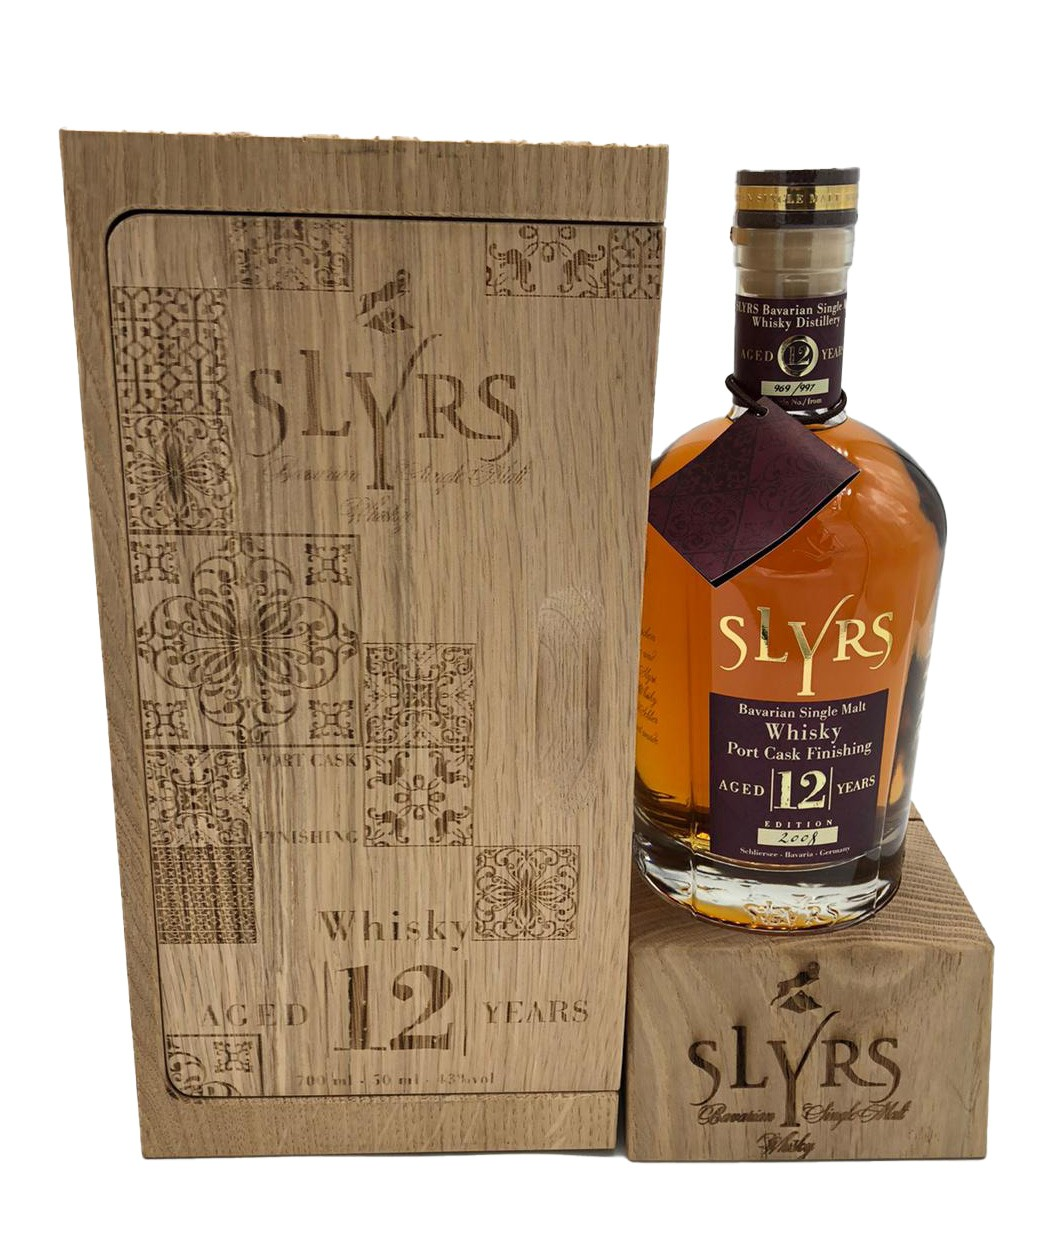 Slyrs Port Cask Finishing 12 Years Aged (In Holzbox + 0,05 l Probierfläschchen)